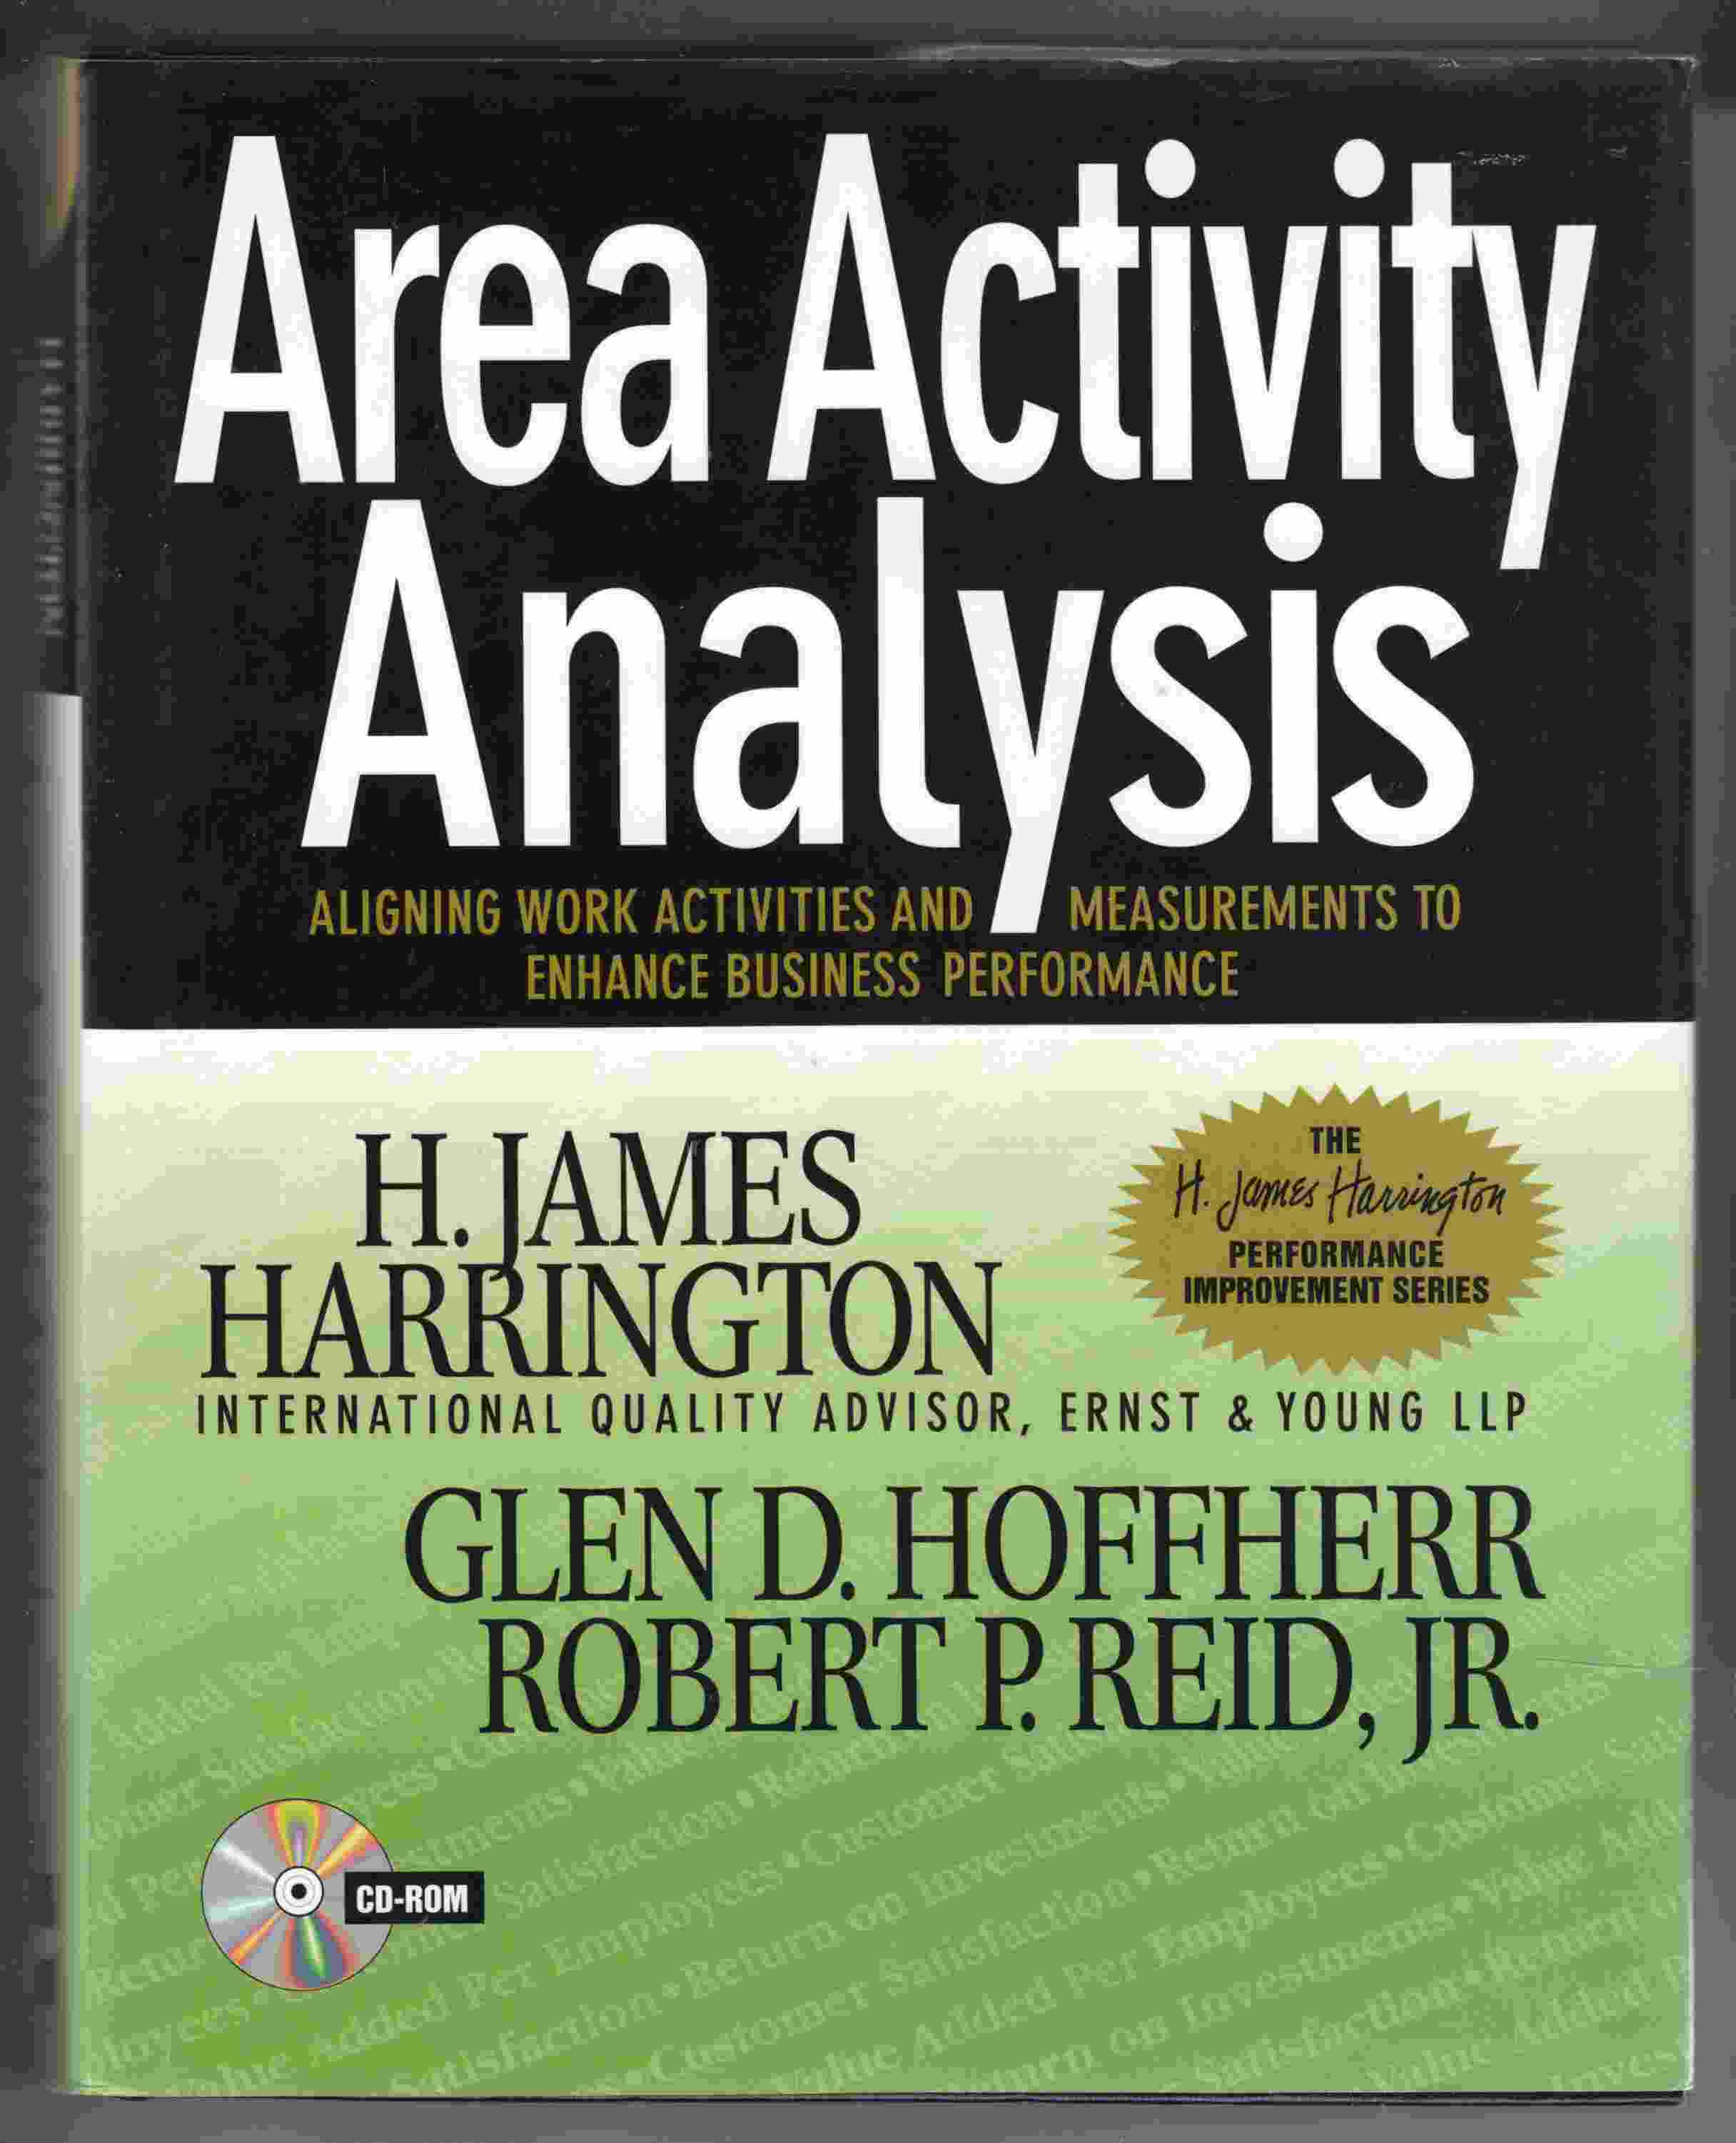 Image for Area Activity Analysis Aligning Work Activities and Measurements to Enhance Business Performance